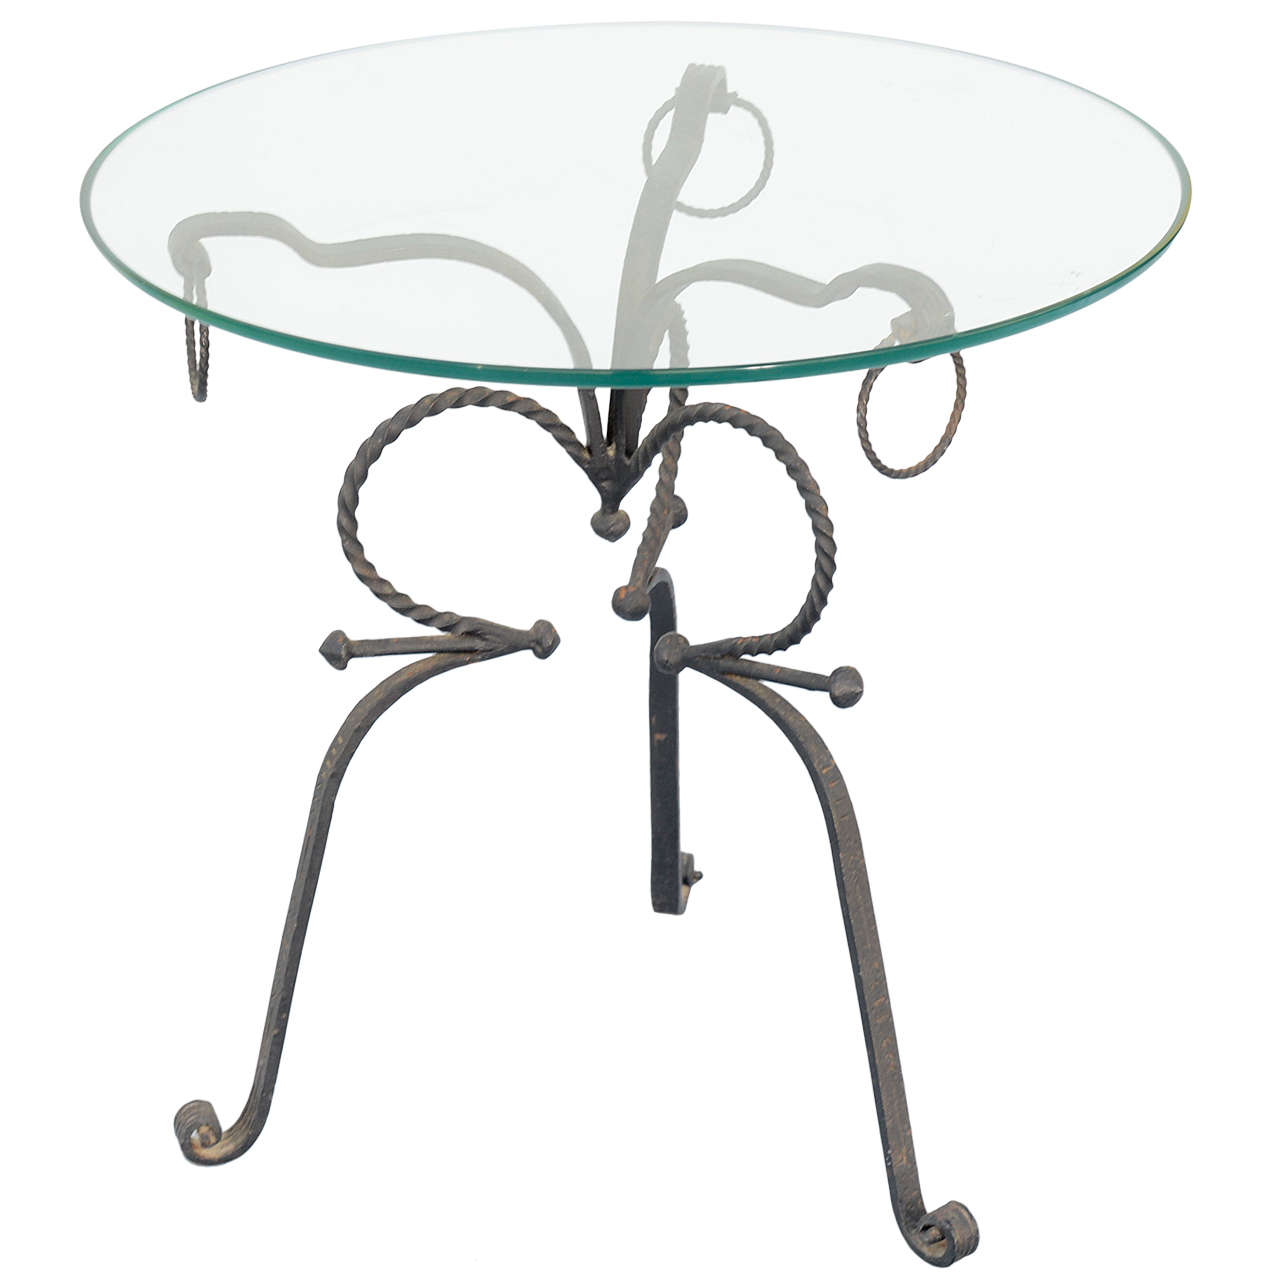 Unusual Wrought Iron Table